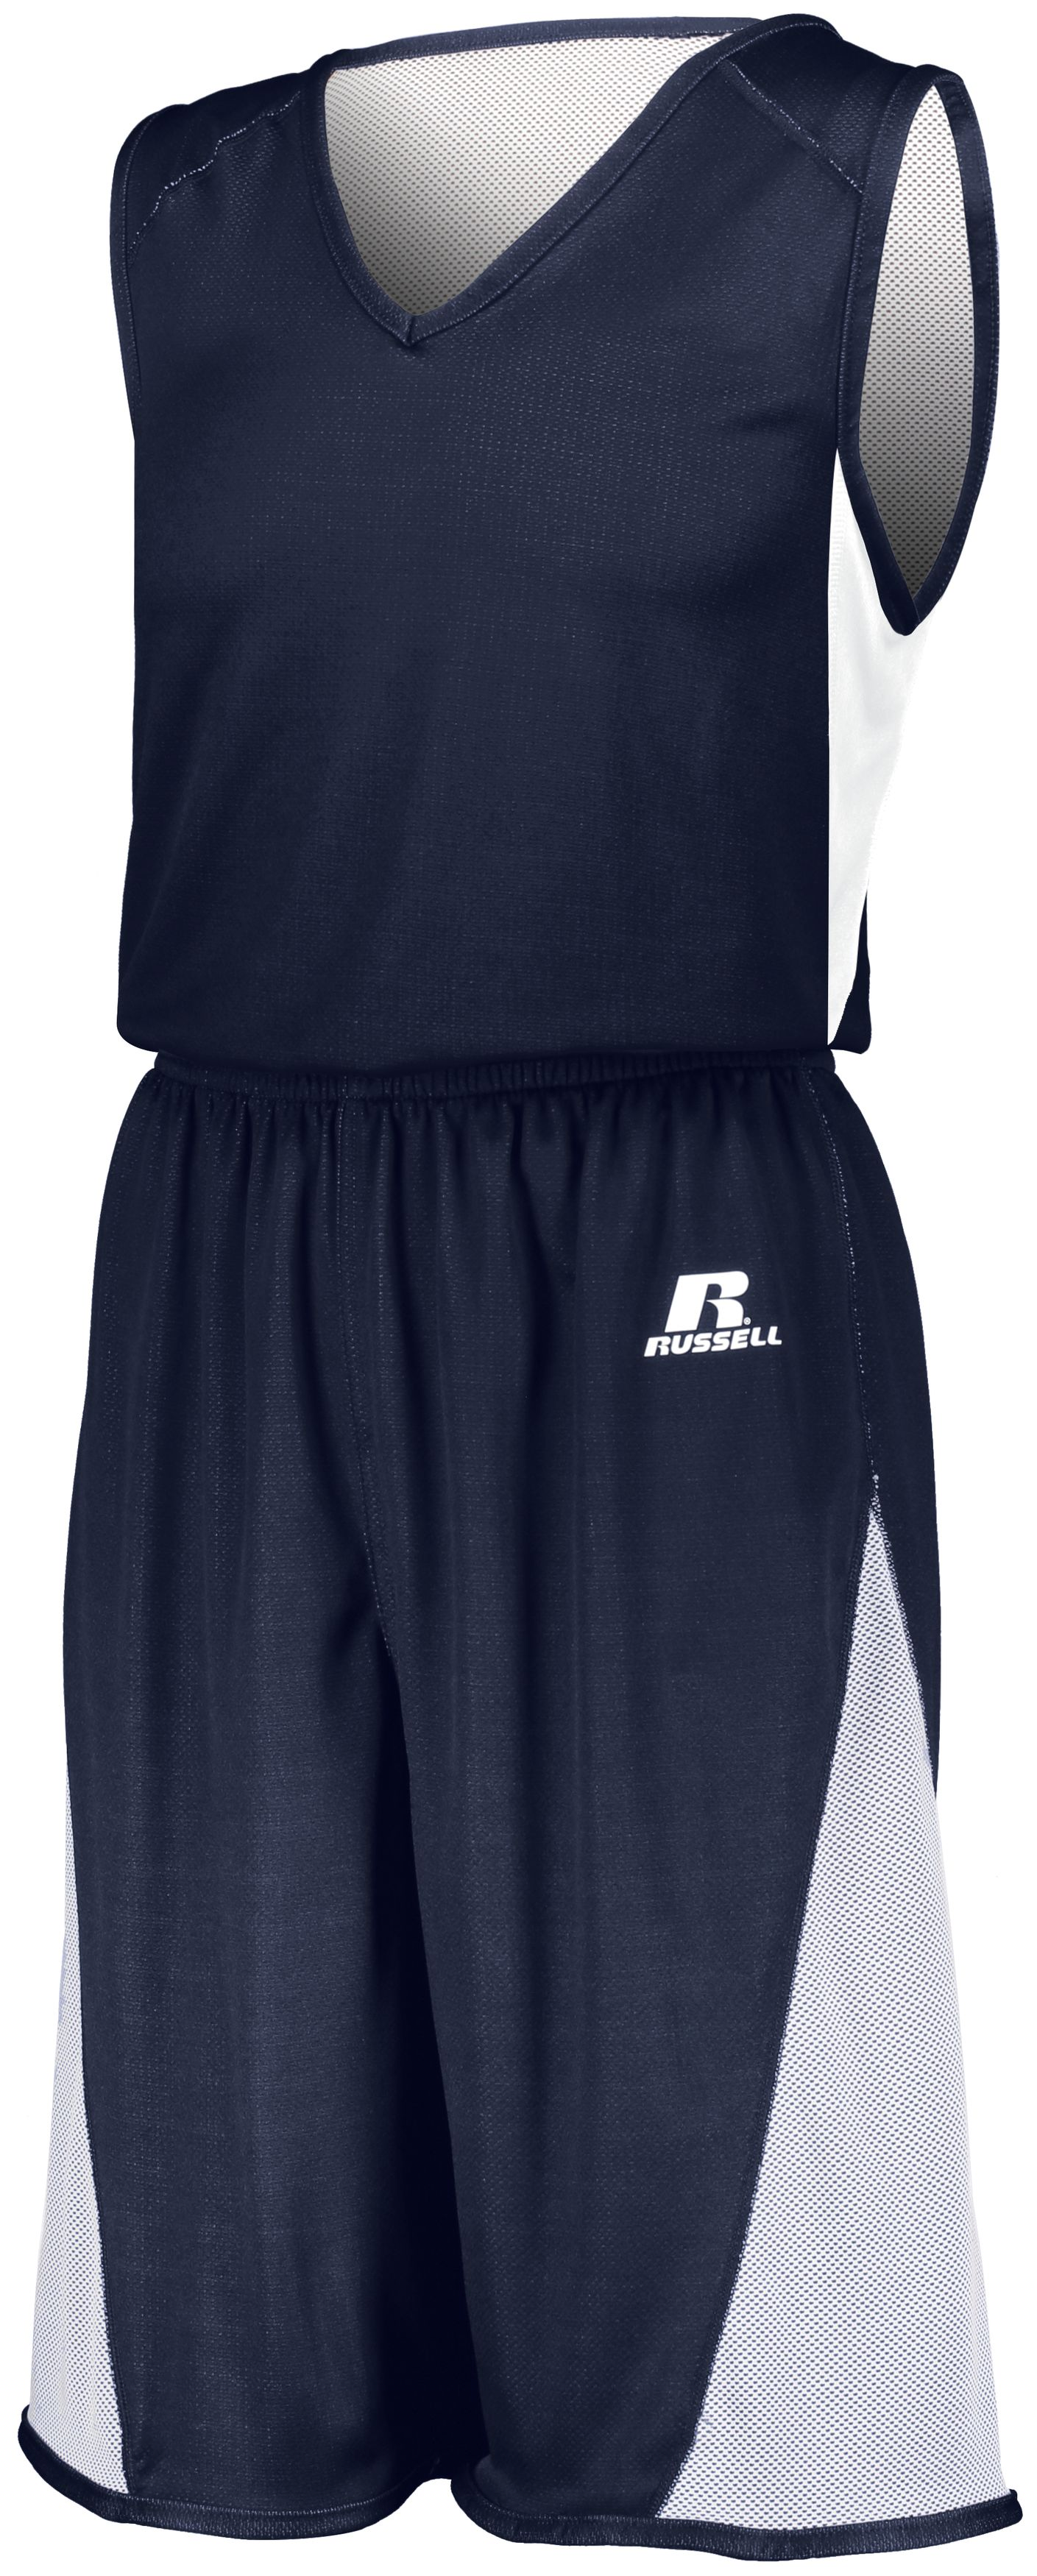 Undivided Single Ply Reversible Jersey - NAVY/WHITE